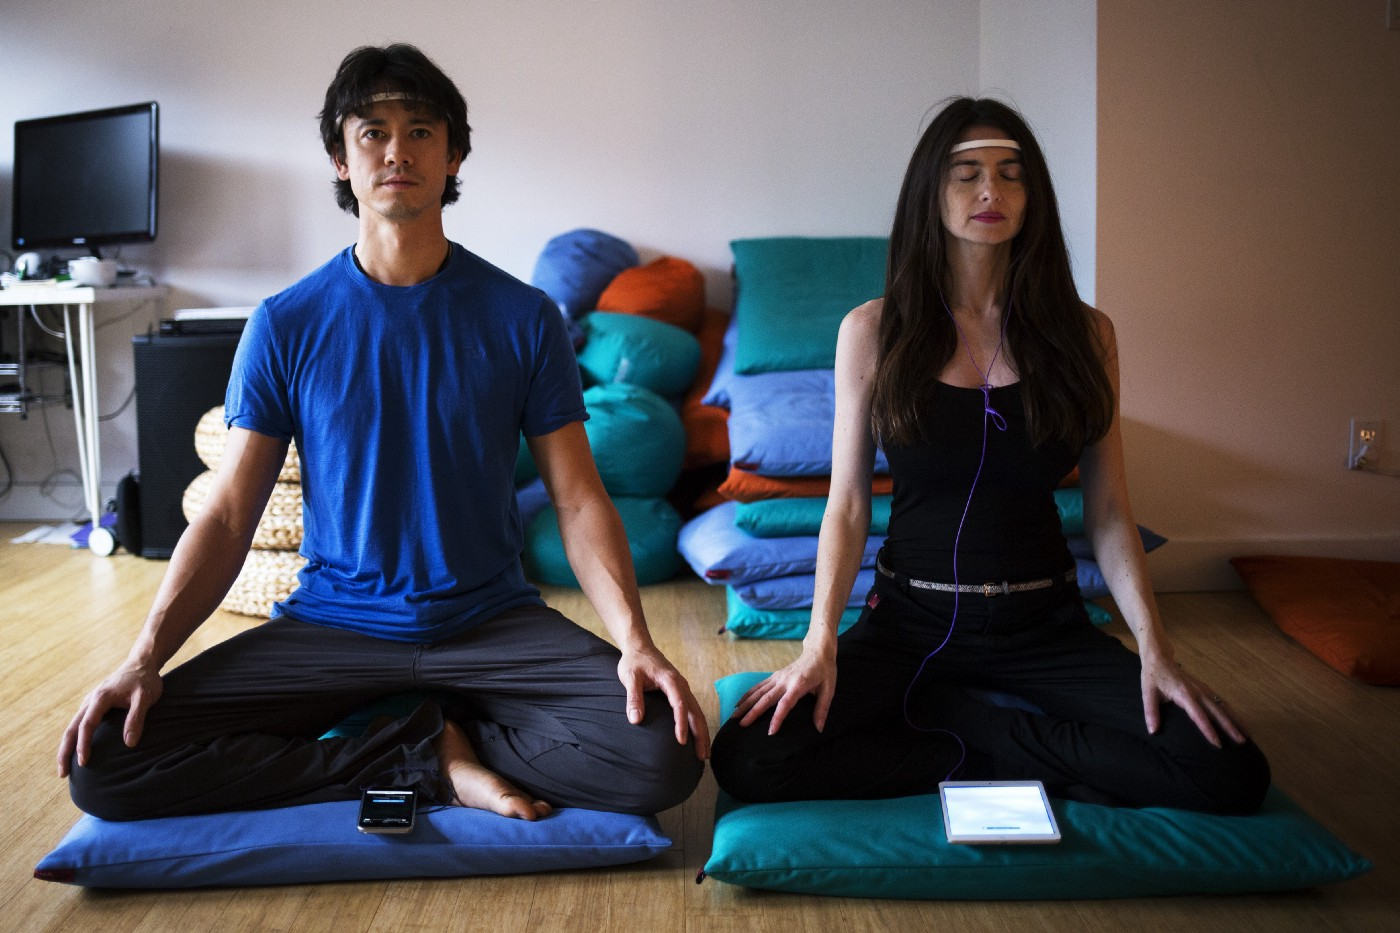 Chris Aimone and Ariel Garten, cofounders of InteraXon, are sitting down in seated positions wearing the Muse headband.